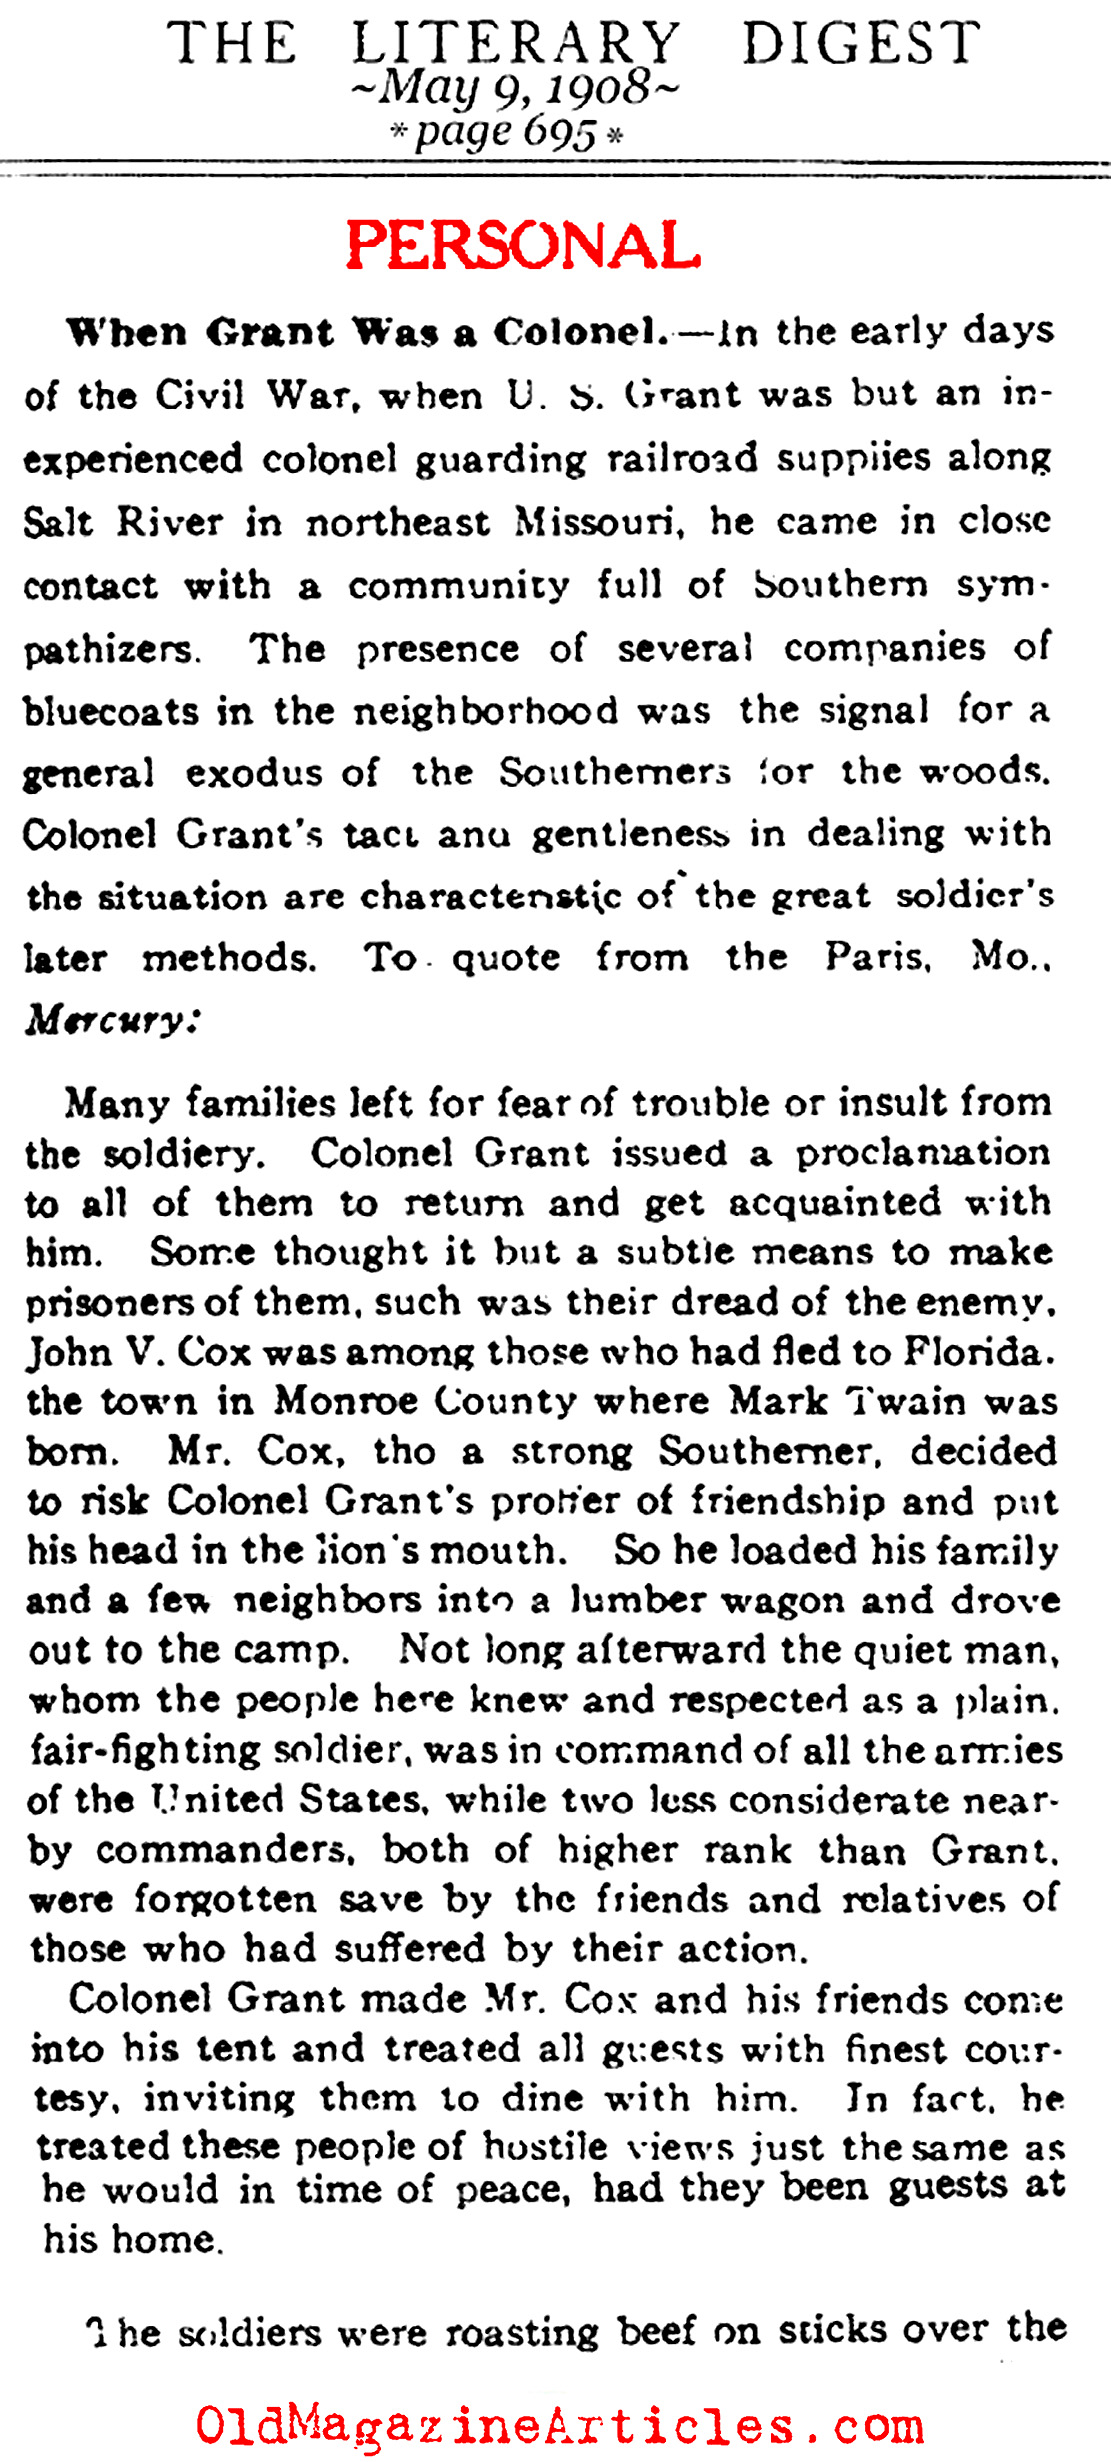 When Grant was a Colonel (Literary Digest, 1908)